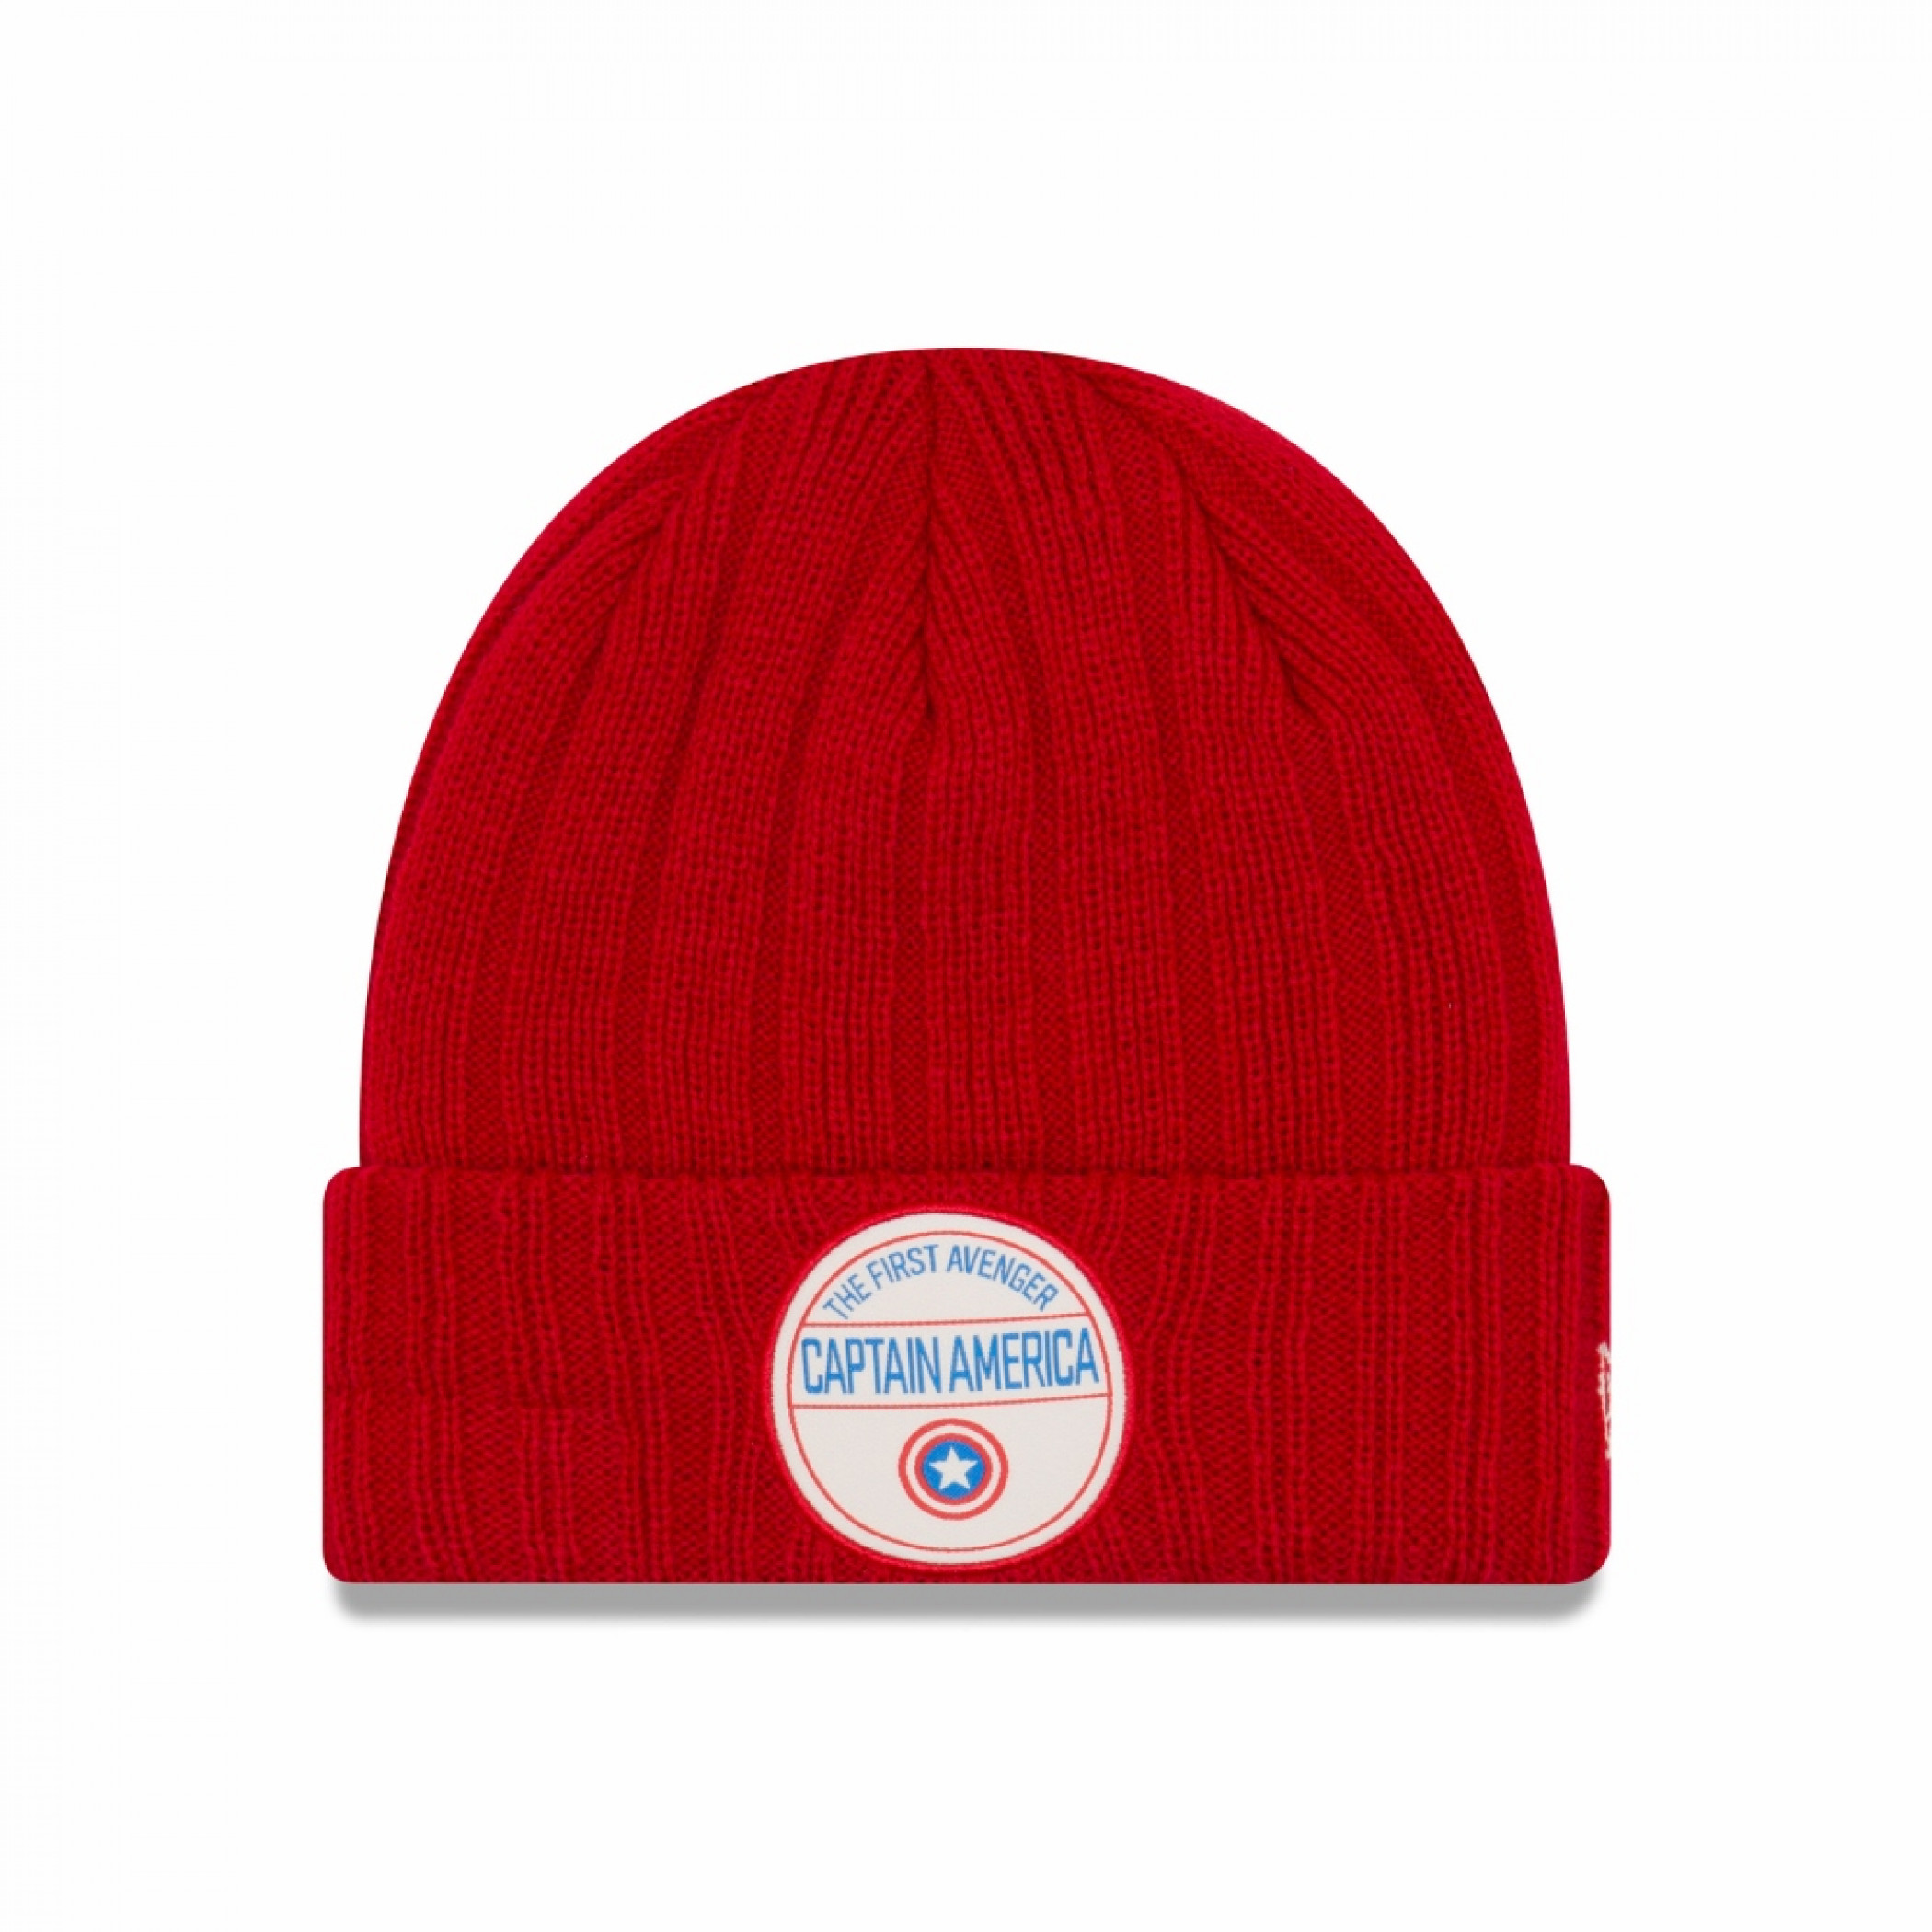 Captain America The First Avenger Retro Ribbed Cuff Beanie